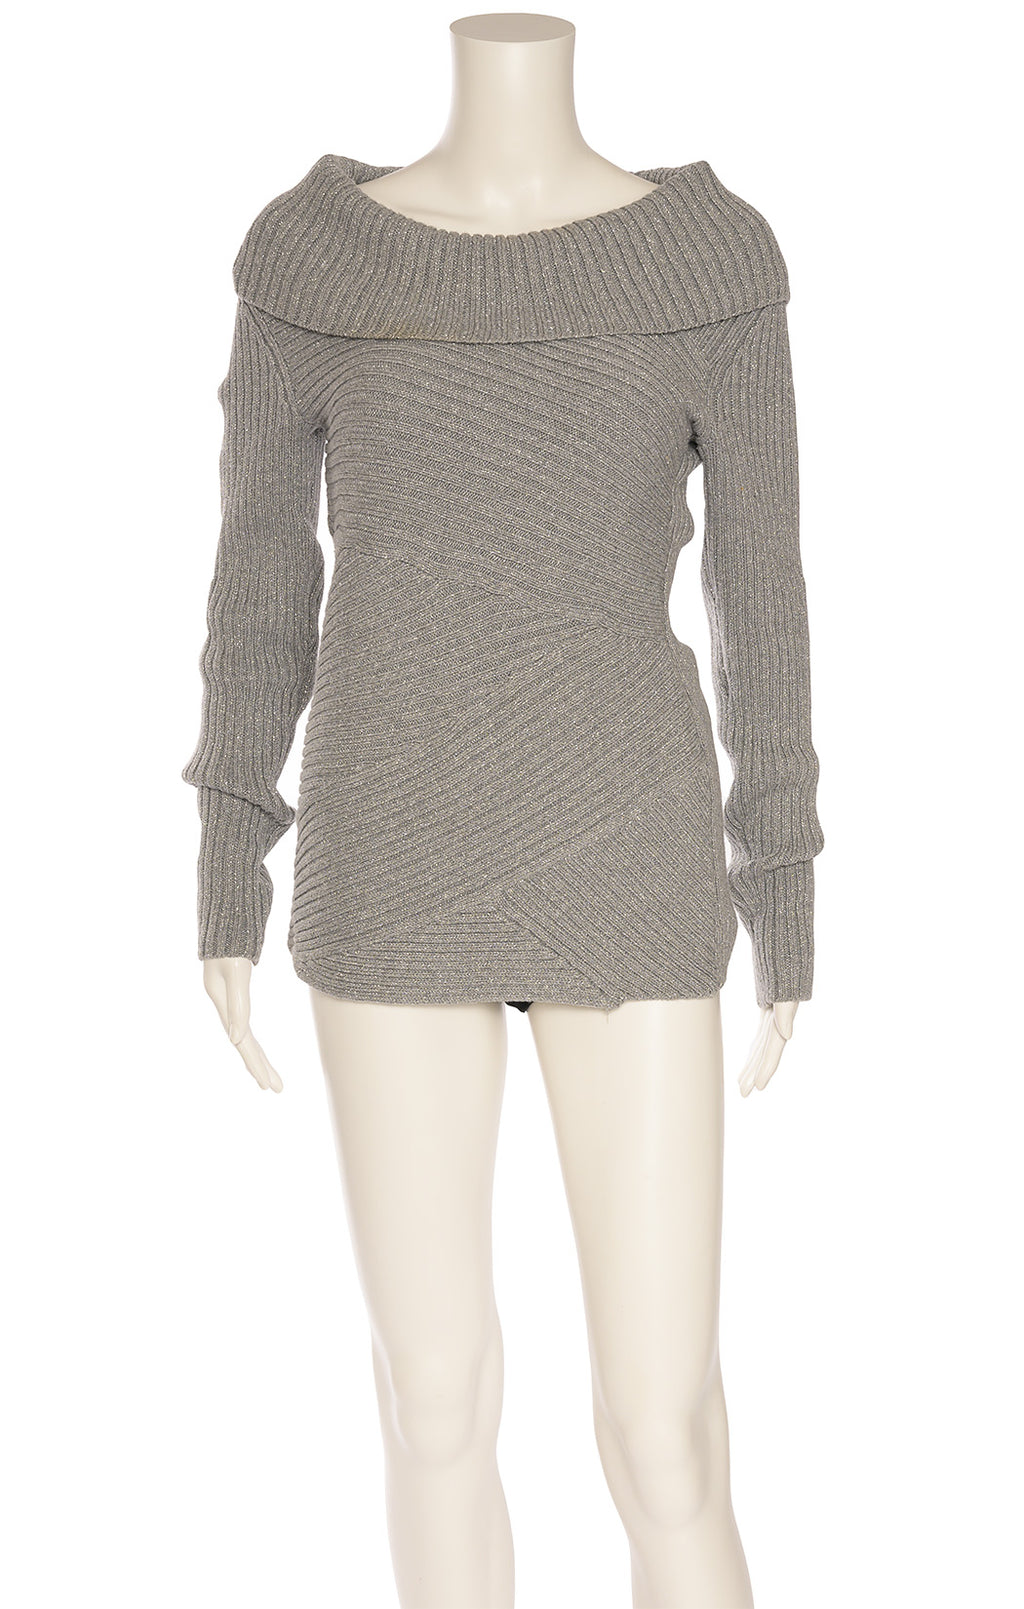 Silver gray lurex turtleneck sweater